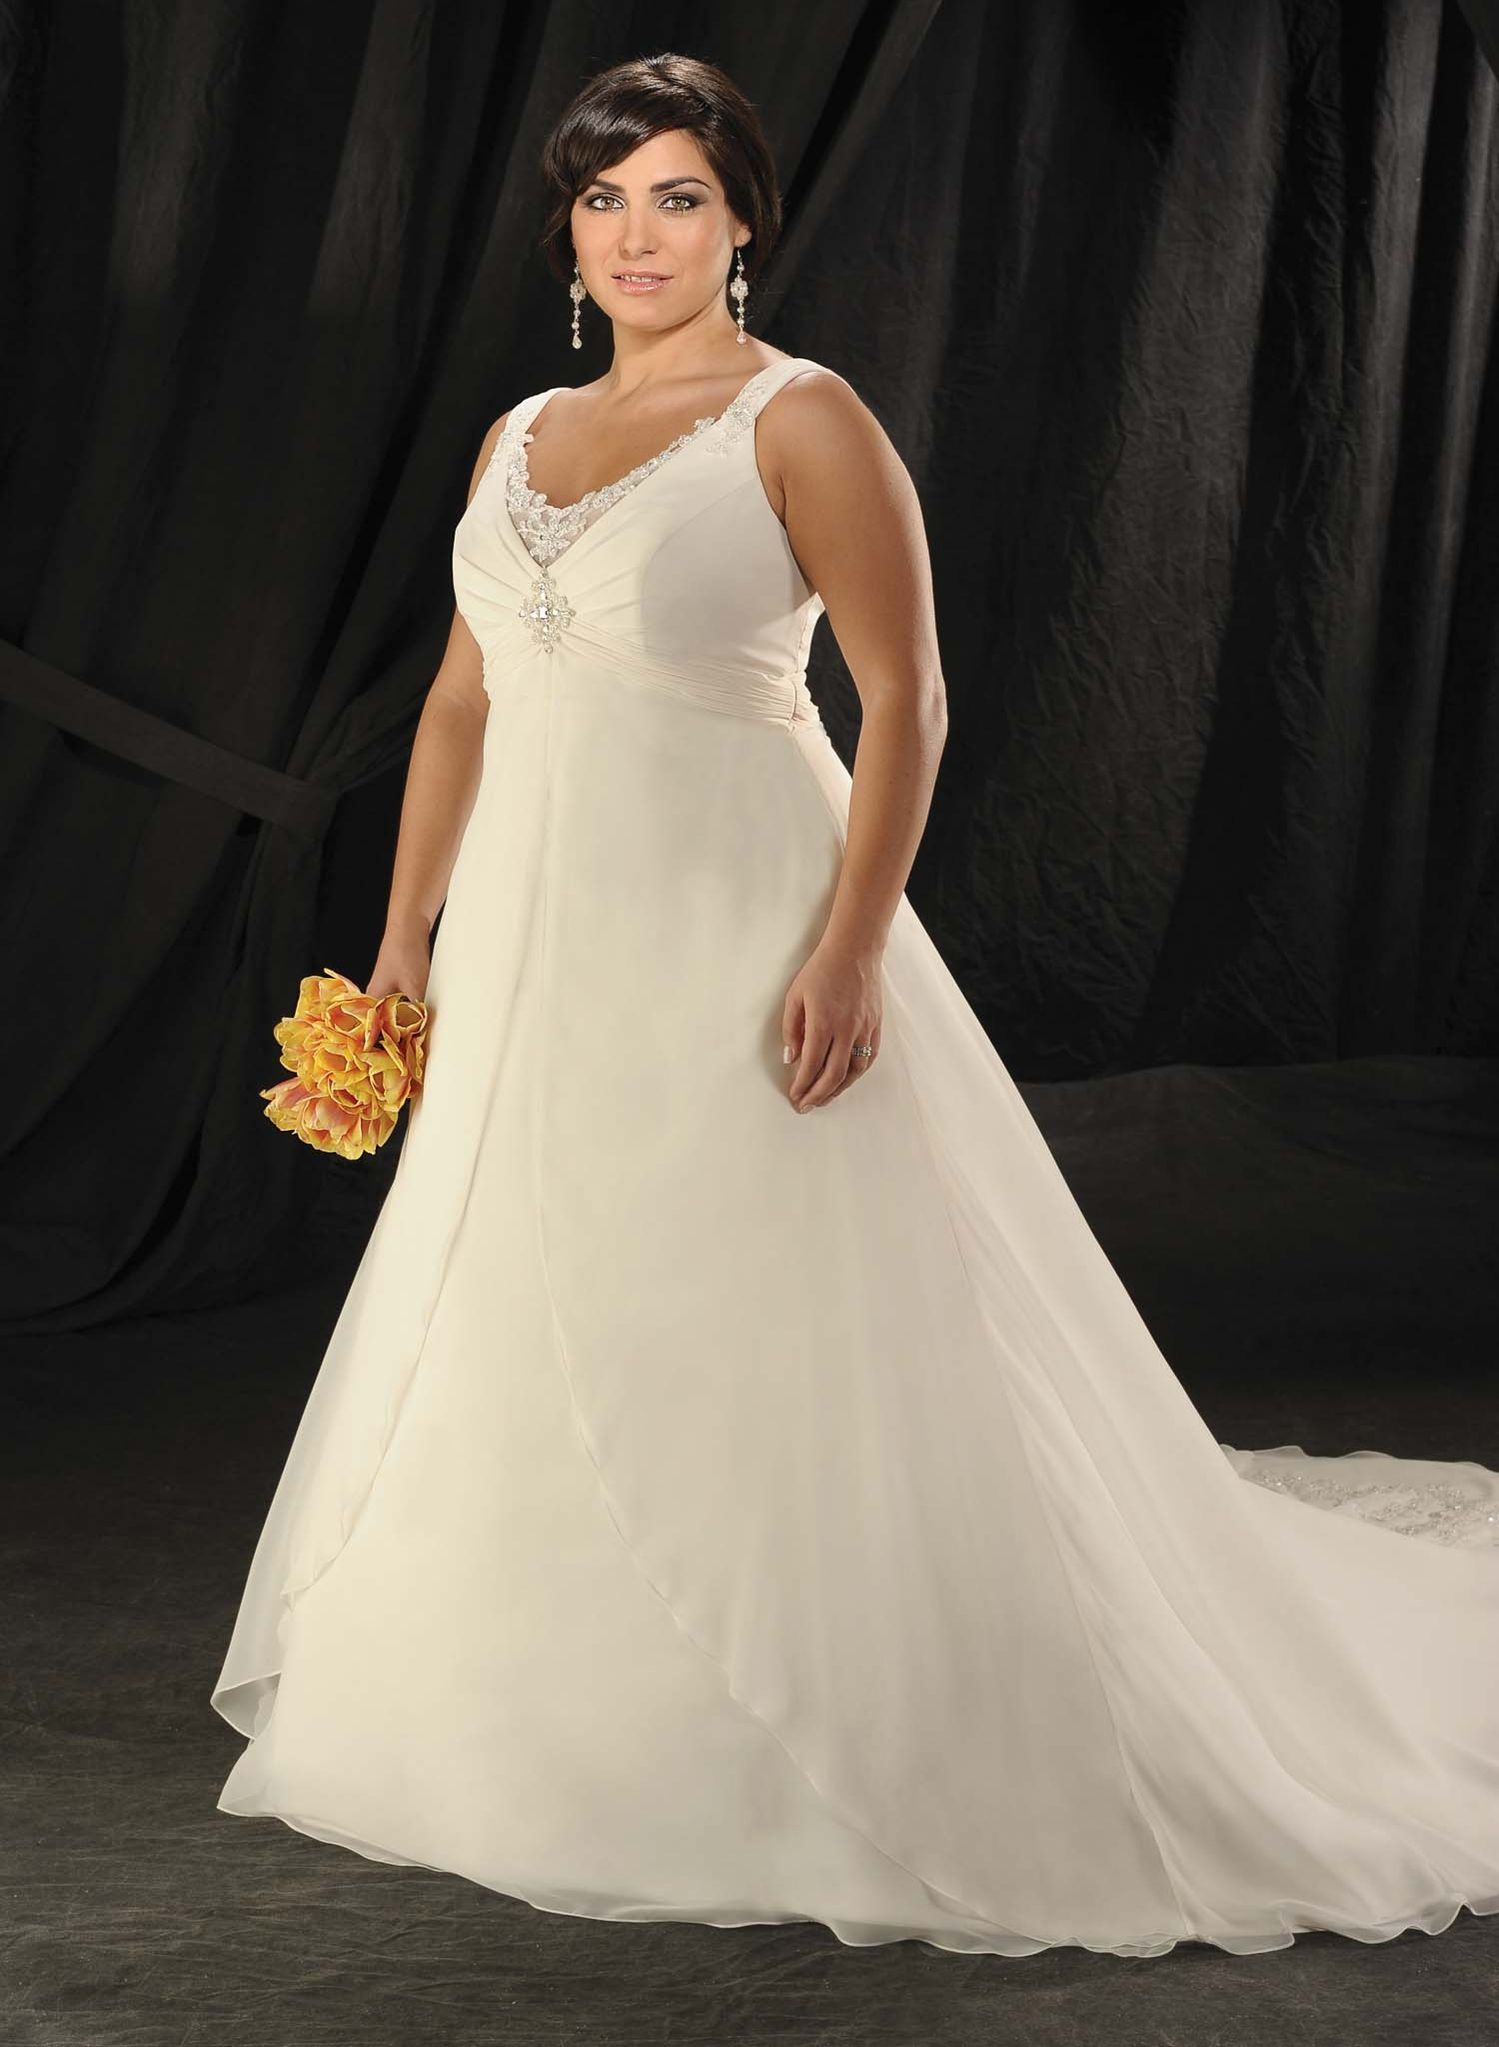 Plus Size Wedding Dresses Beautiful Looks for Women with